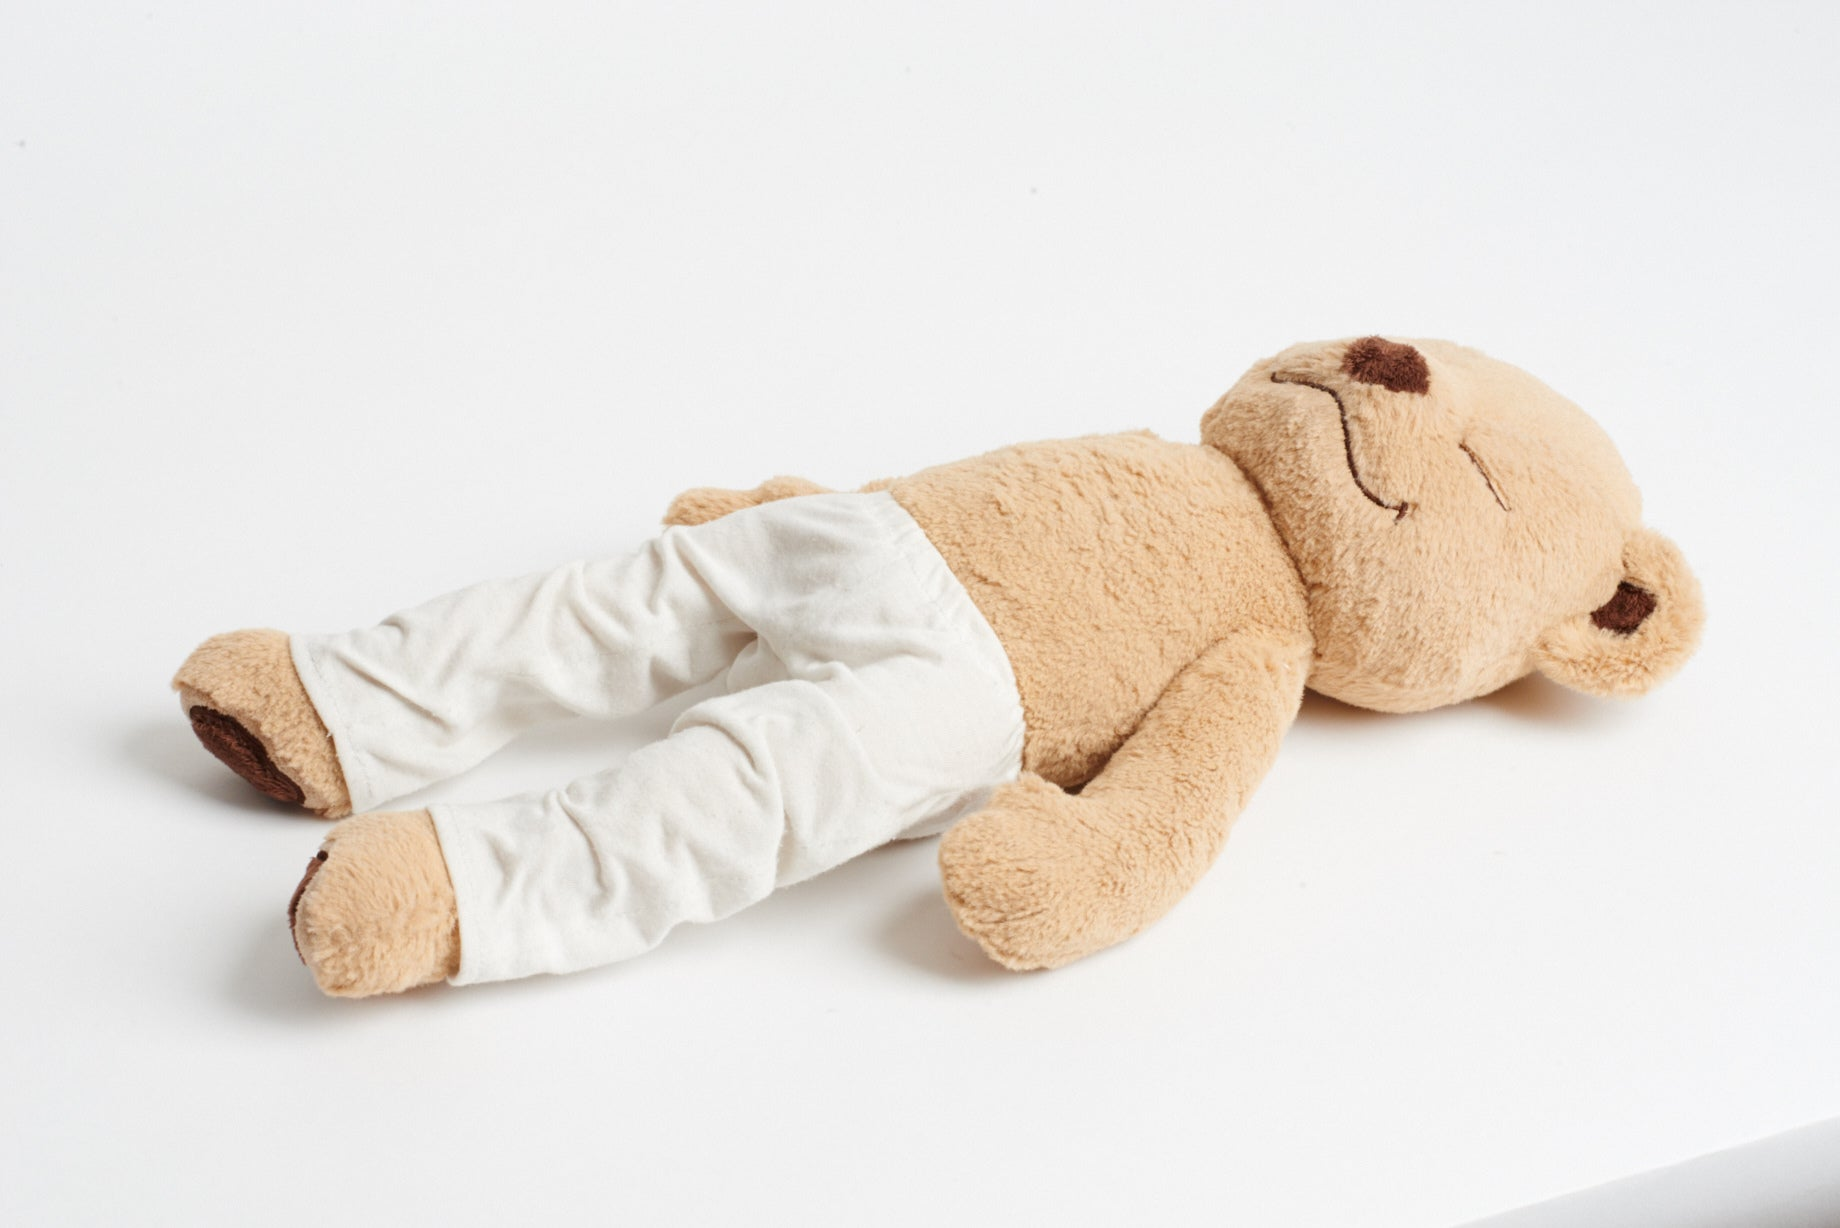 Learn How to do Corpse Pose with Meddy Teddy